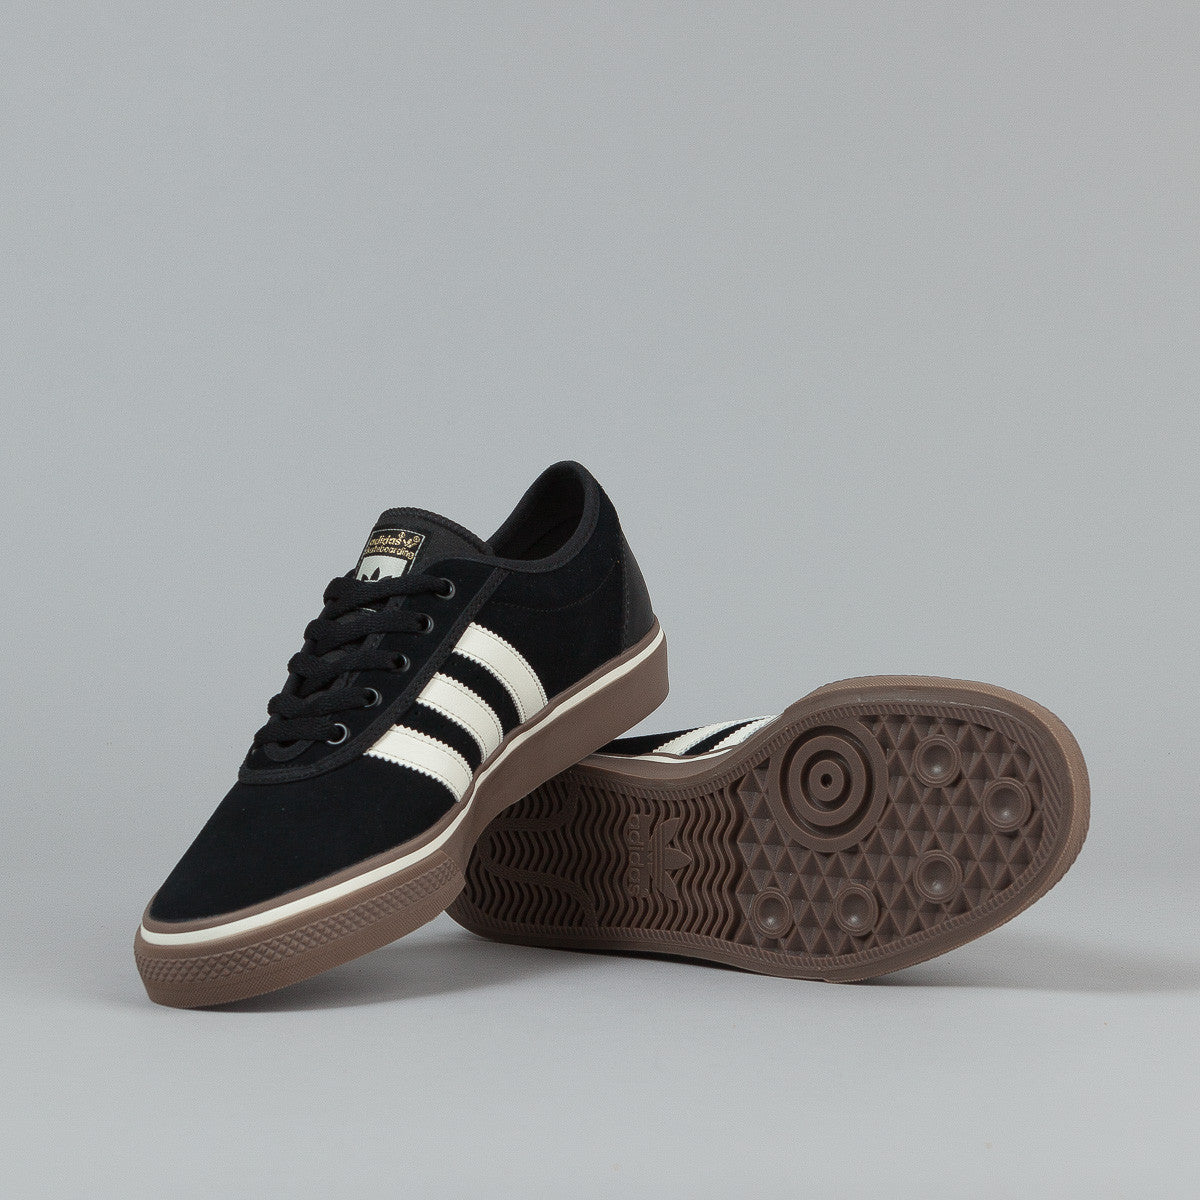 Adidas Adi-Ease Adv Shoes - Core Black / Cream White / Gum5